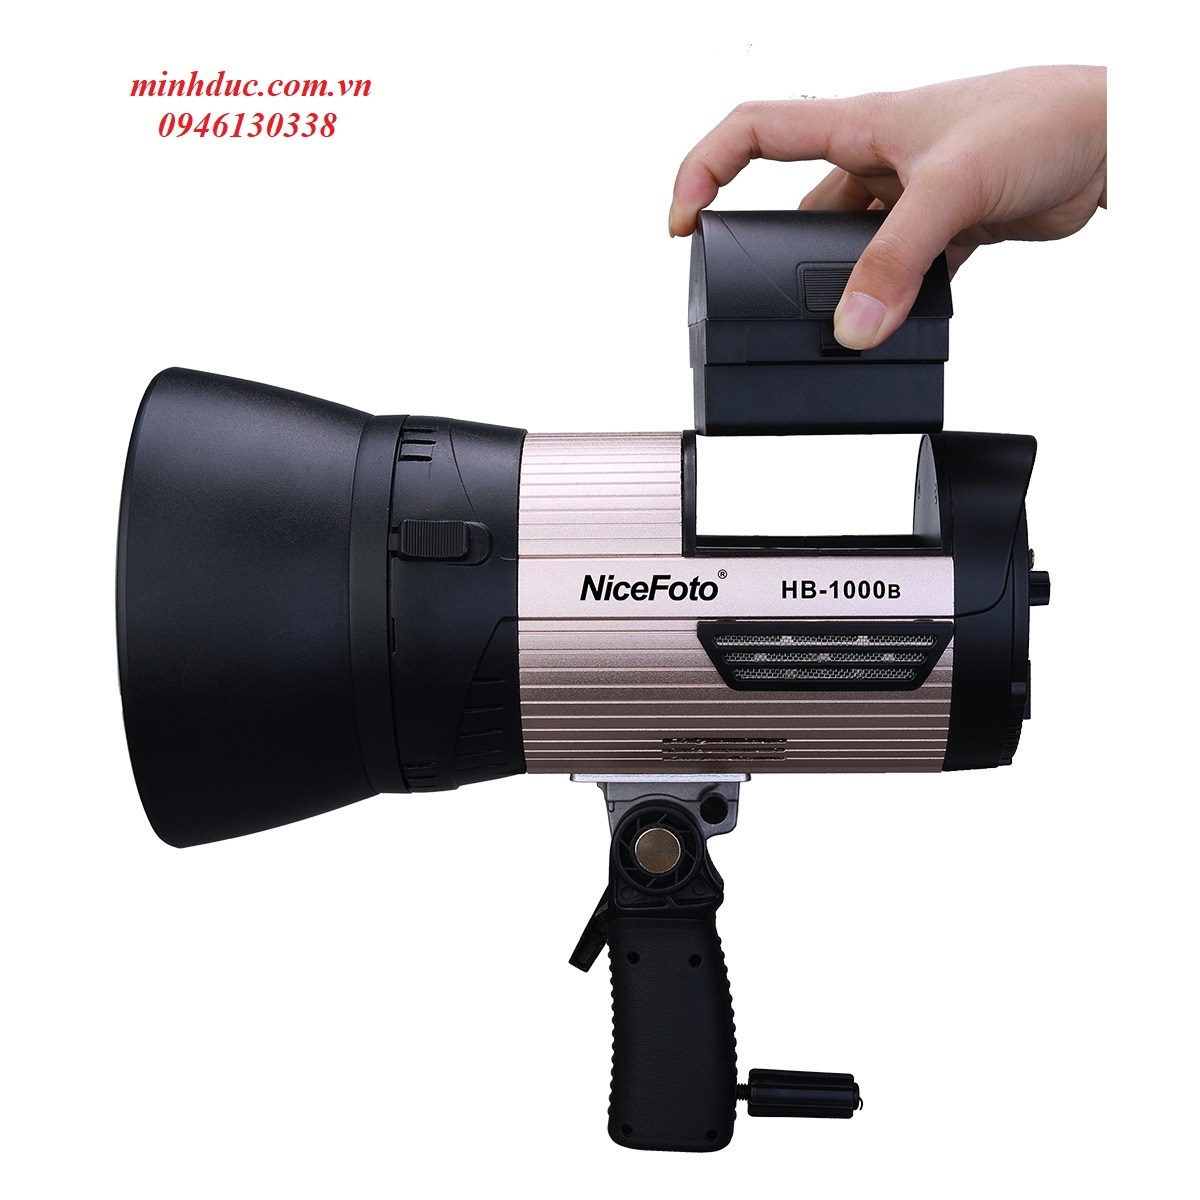 NiceFoto LED video light HB-1000B dùng pin Photoviet